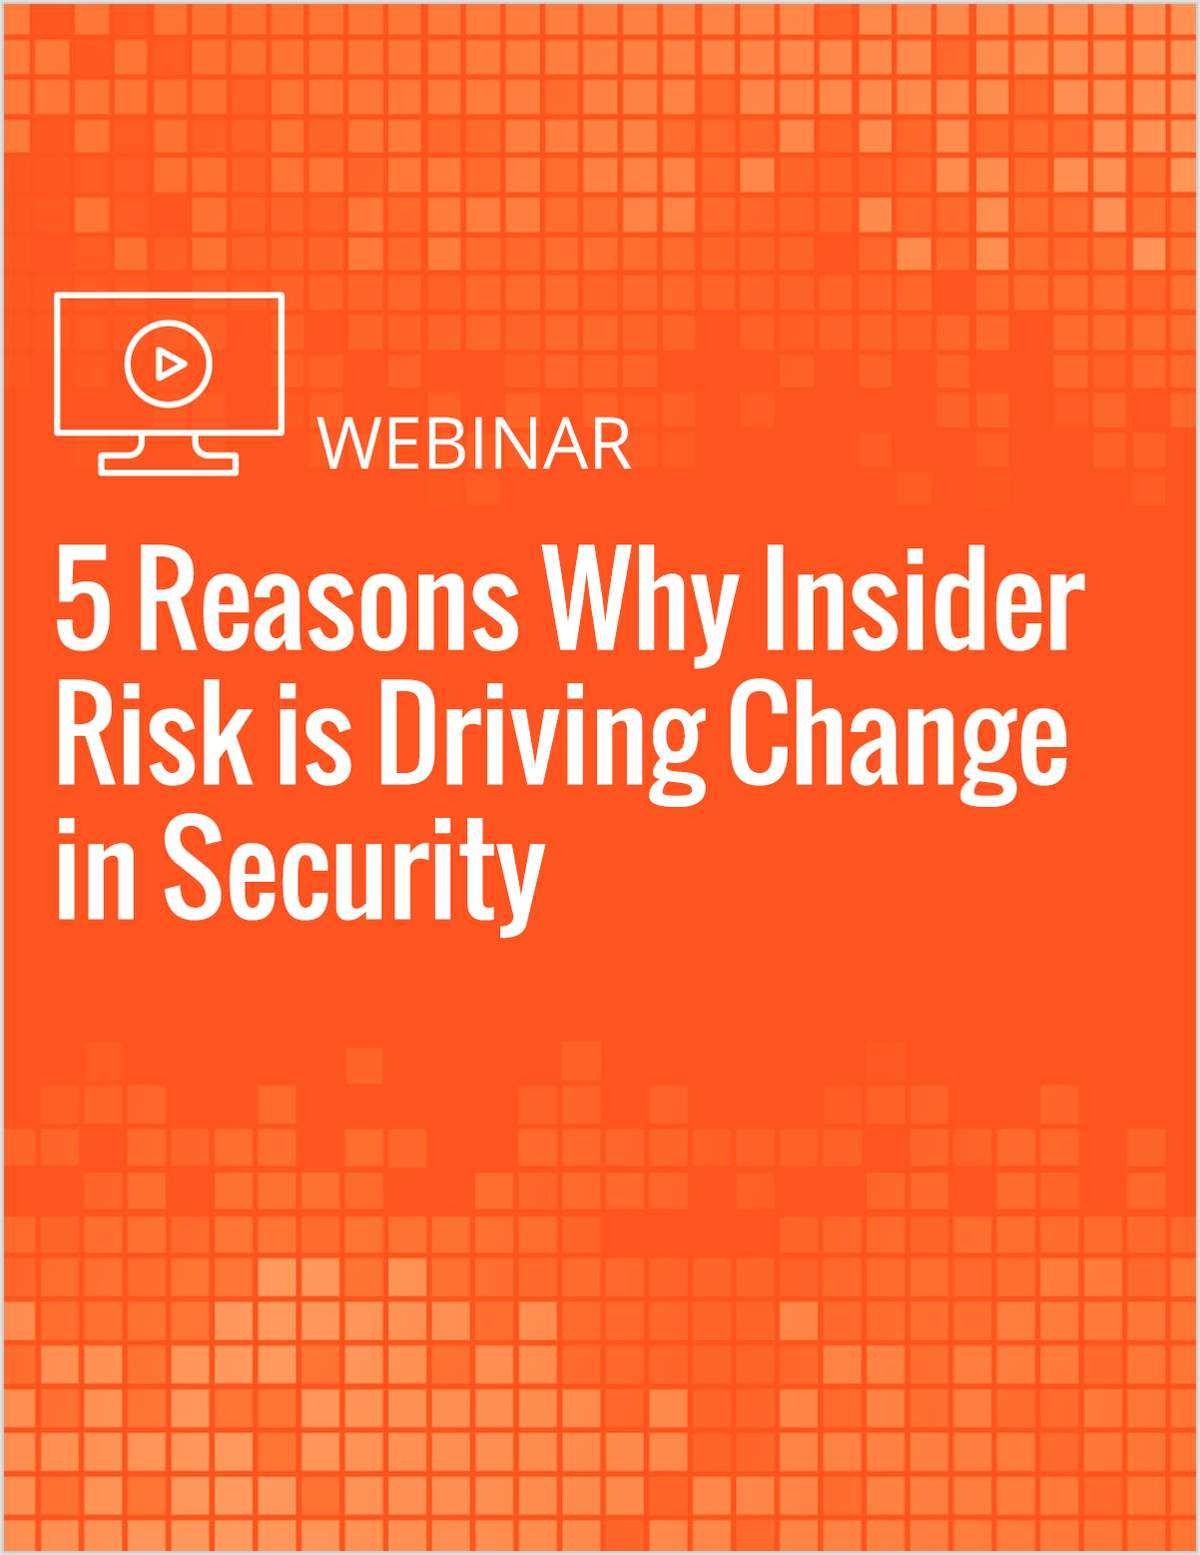 Insider Risk Detection & Response: 5 Reasons Why Insider Risk is Driving Change in Cybersecurity